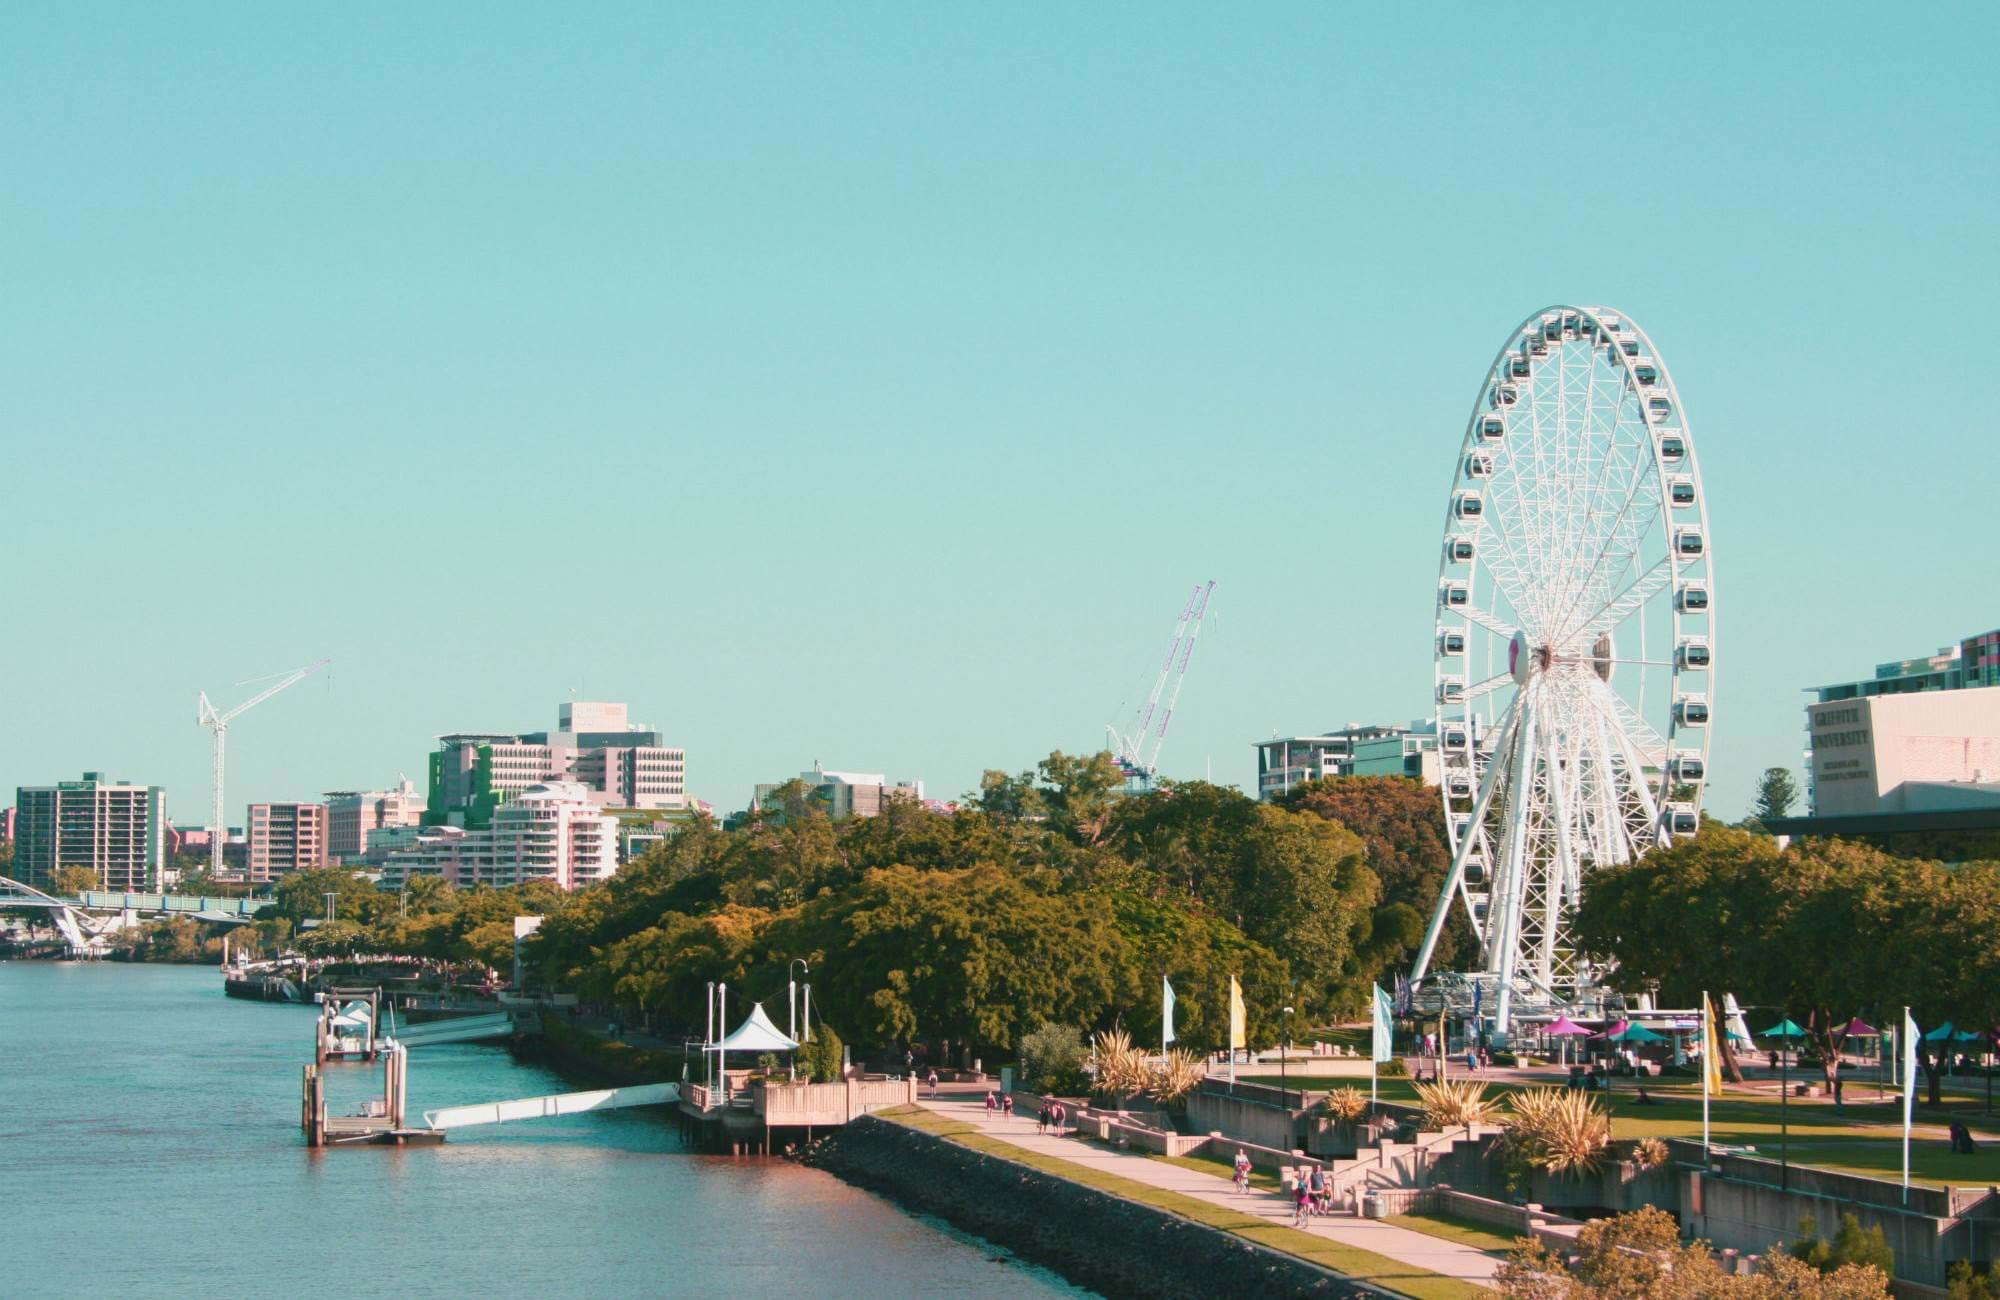 brisbane-australia-ferris-wheel-waterfront-cover